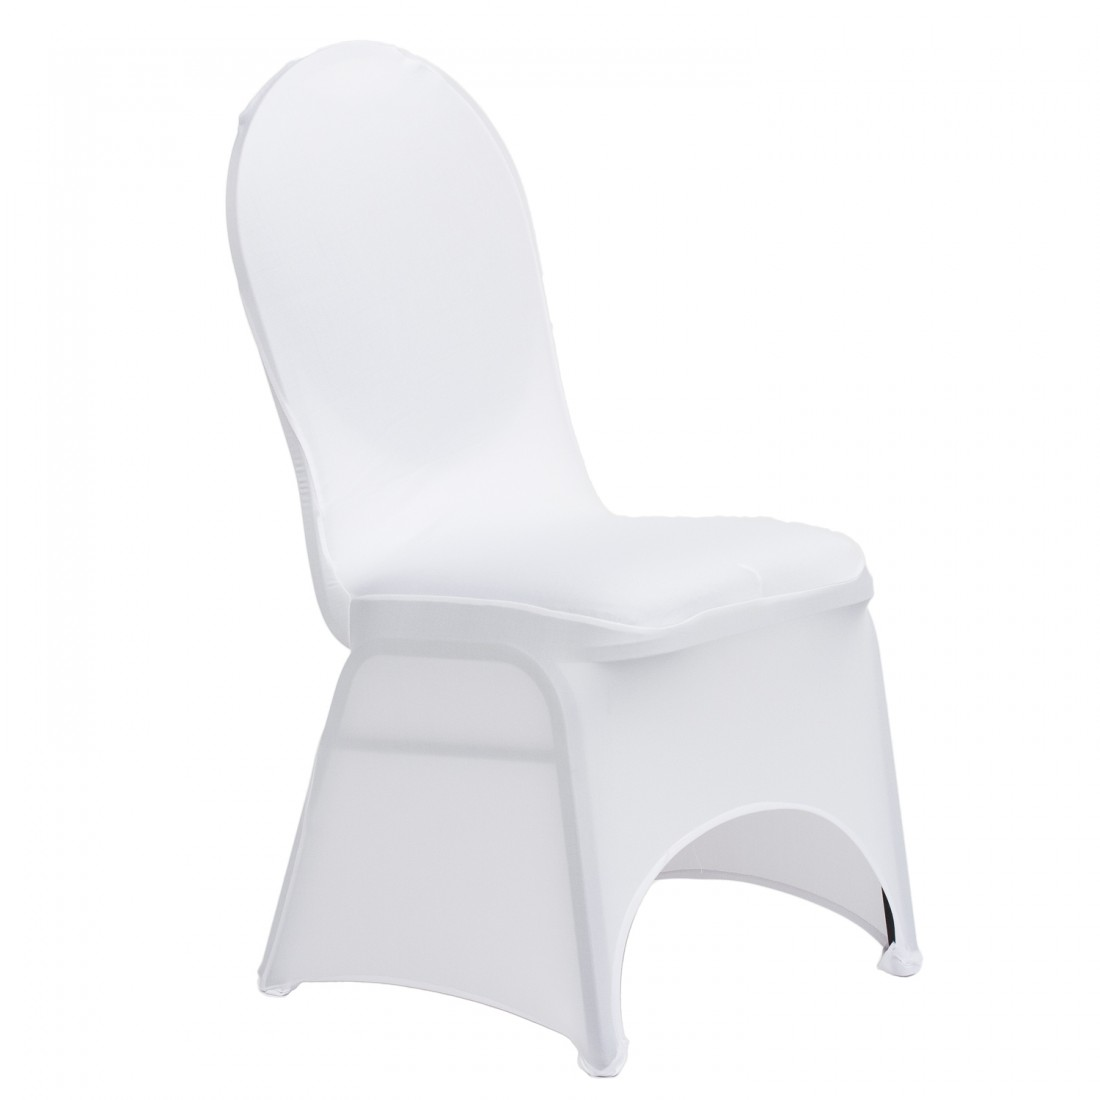 stretch chair covers wedding rental modern windsor spandex cover